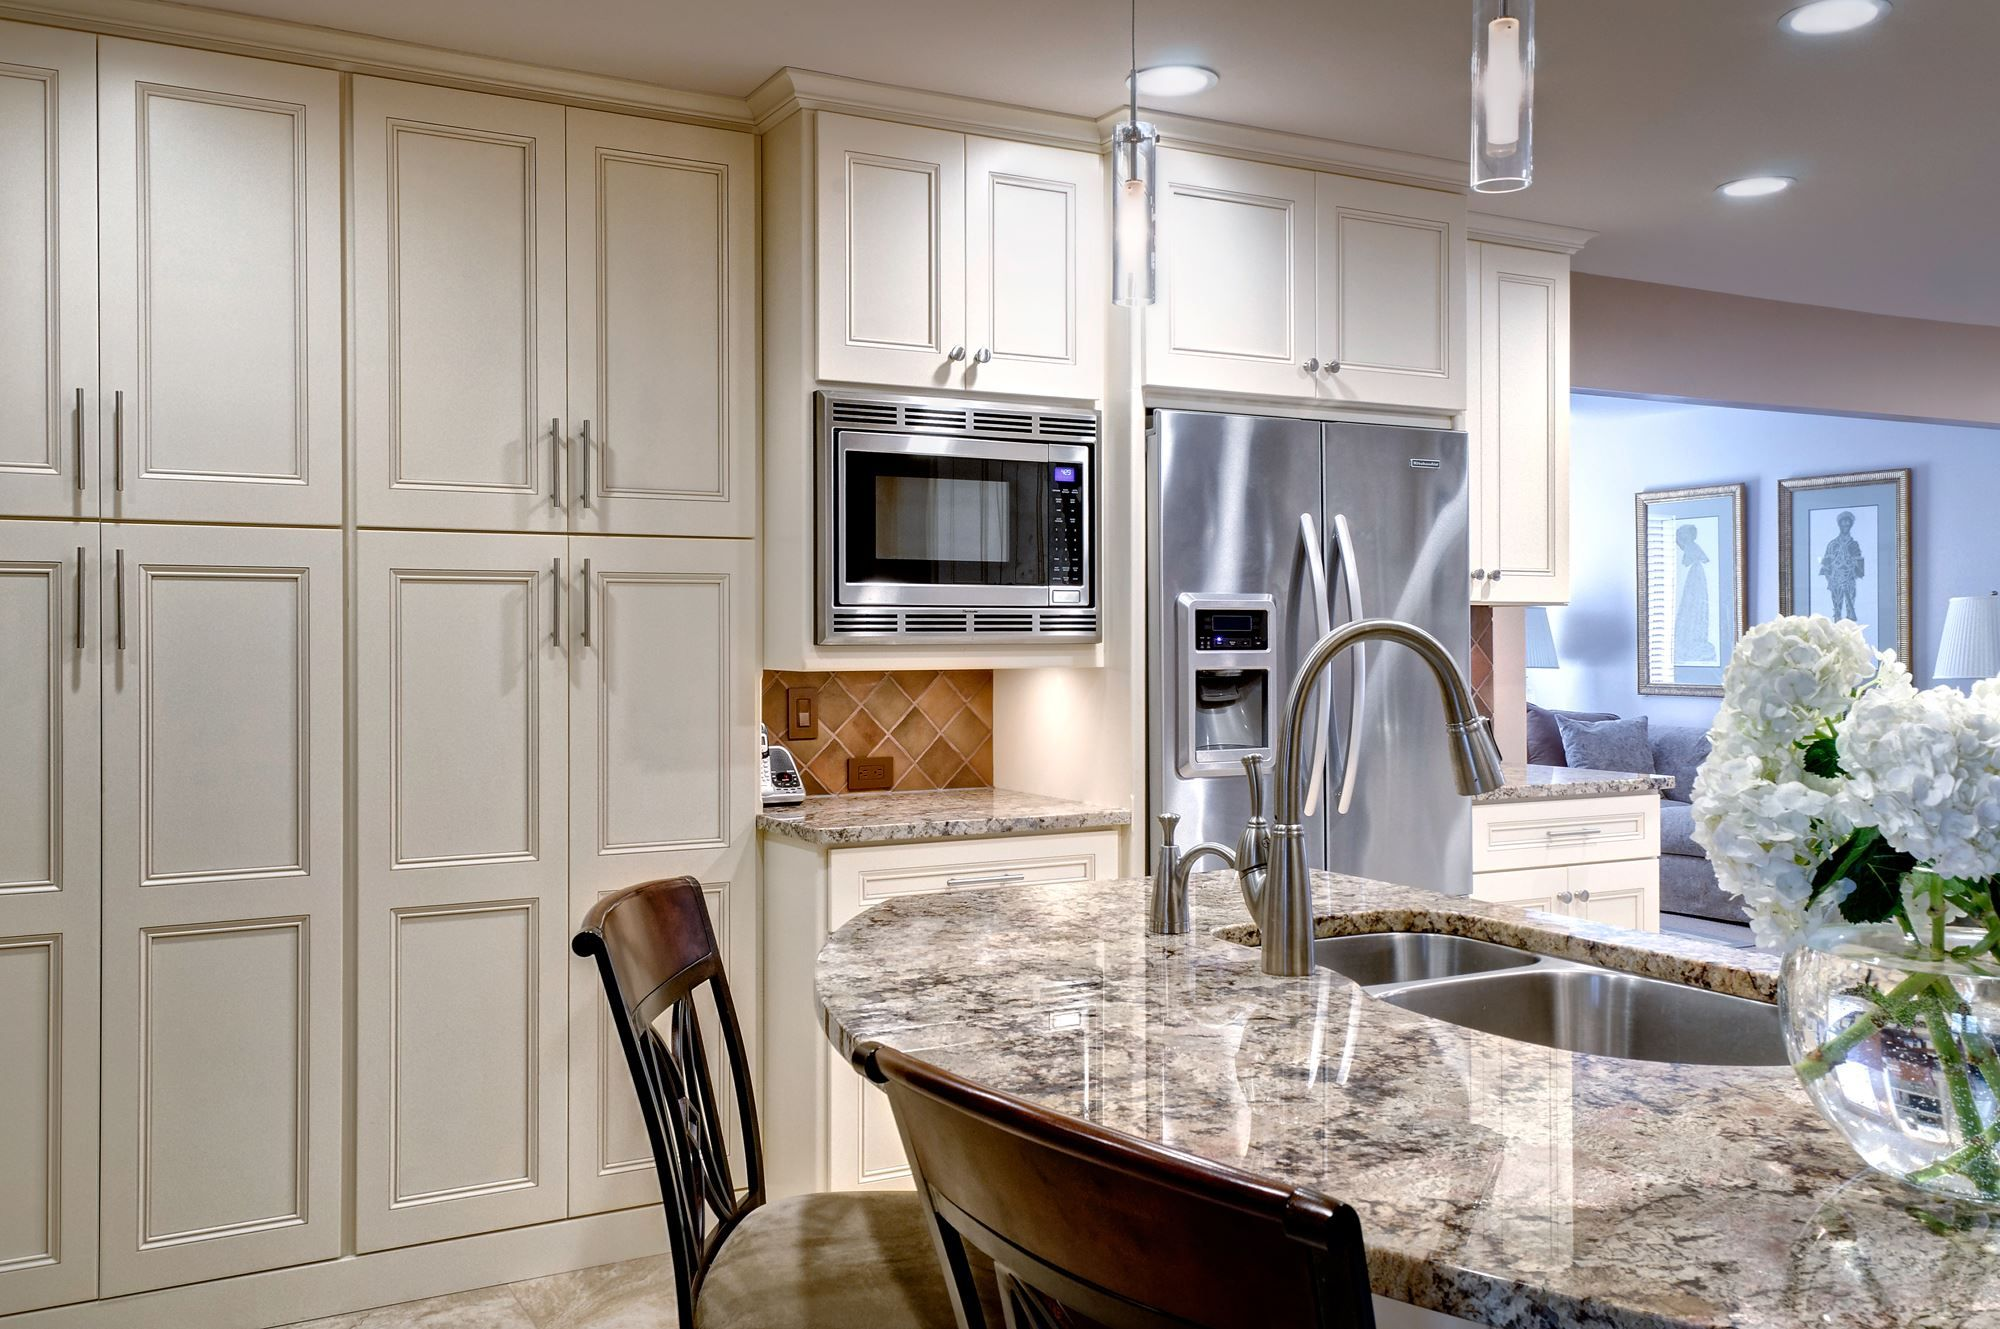 Simply Inviting Gallery Custom Wood Products Handcrafted Cabinets Kitchen Redesign Kitchen Inspirations Kitchen Cabinet Inspiration